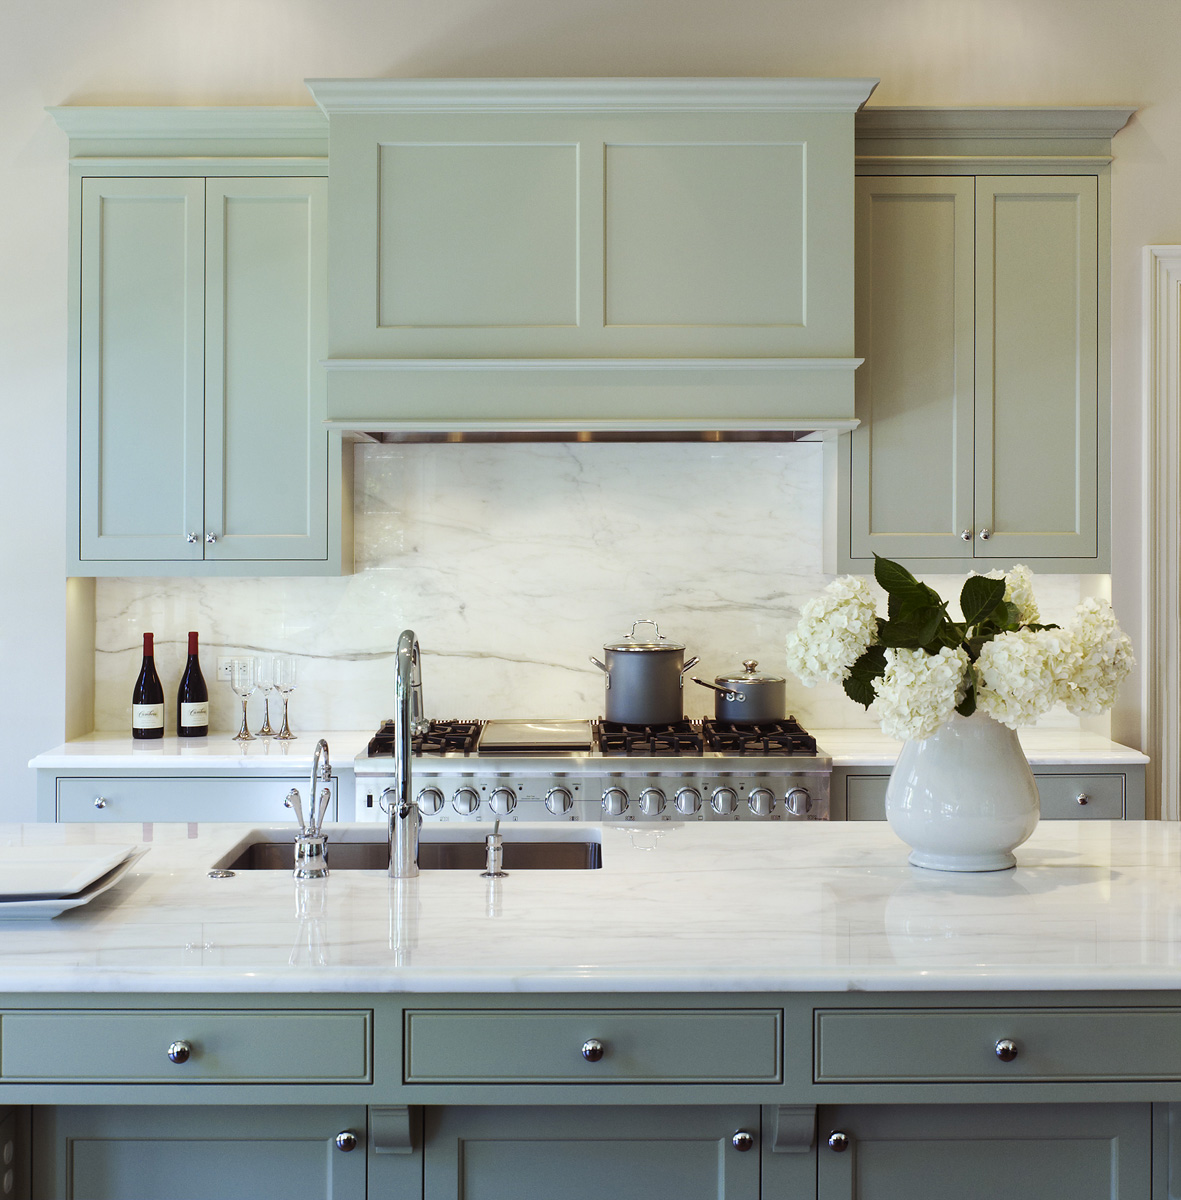 #8: Elegant kitchen with soft green colored cabinetry and crisp white countertop designed by Jones & Boer Architects, Inc. See more of the firm's work here>